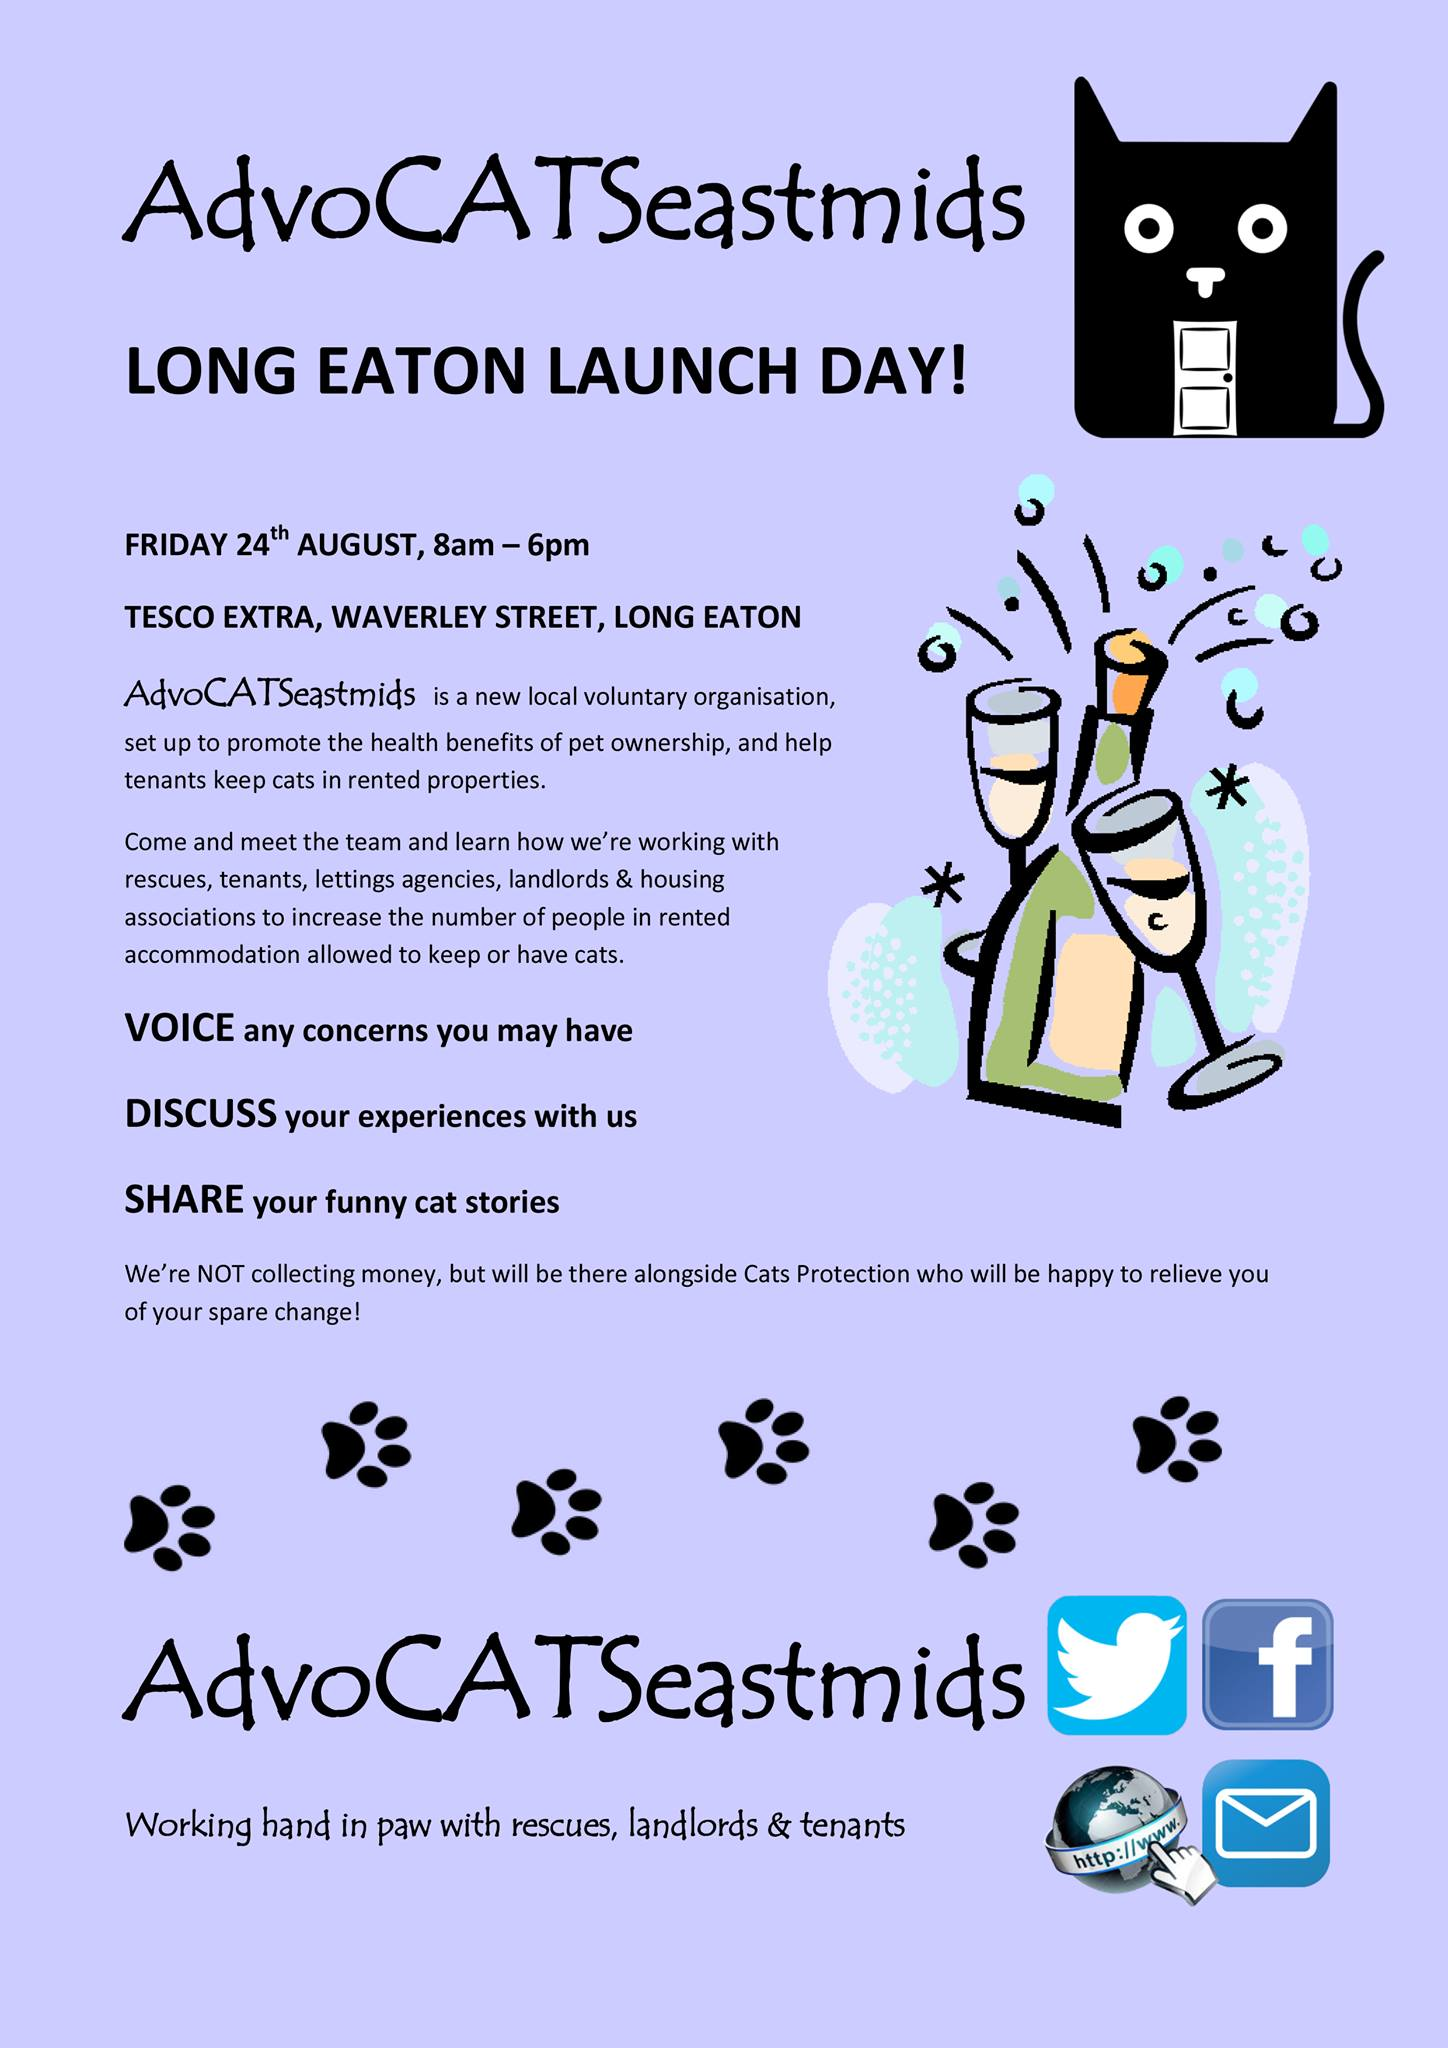 AdvoCATS East Midlands Launch Day Long Eaton